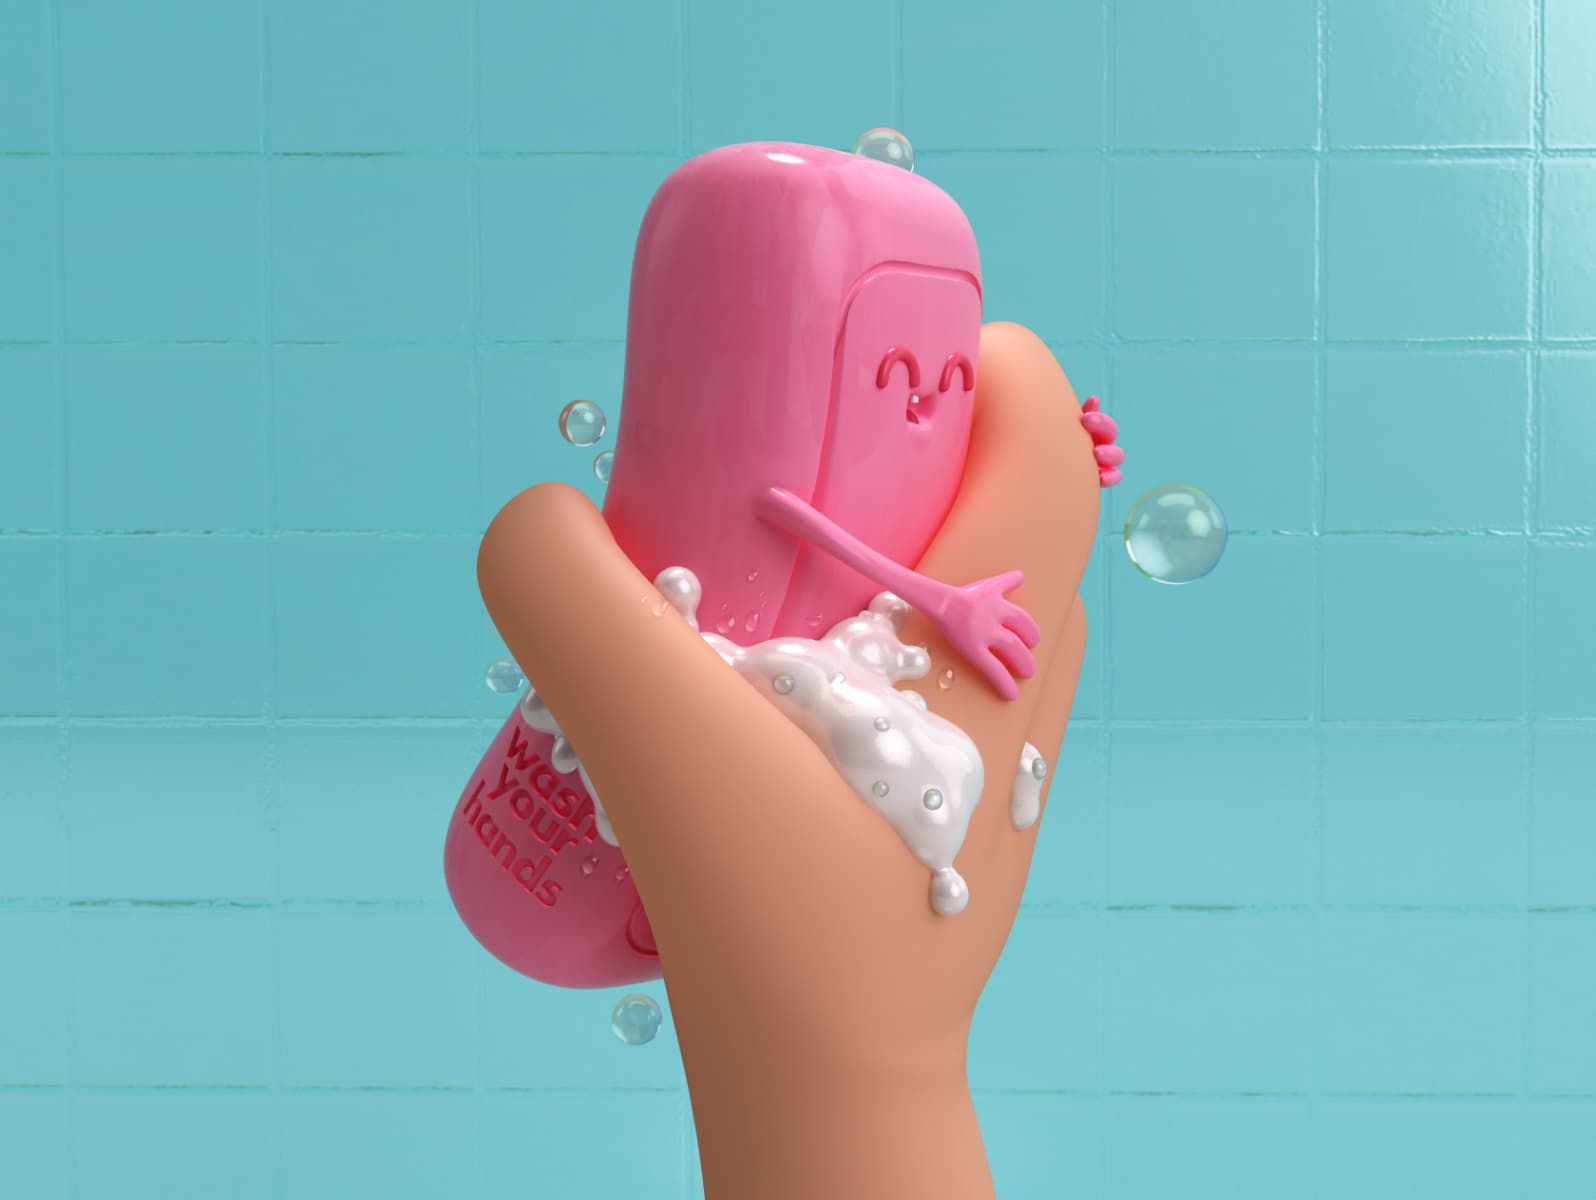 Wash your f*cking hands by Luis Del Castillo